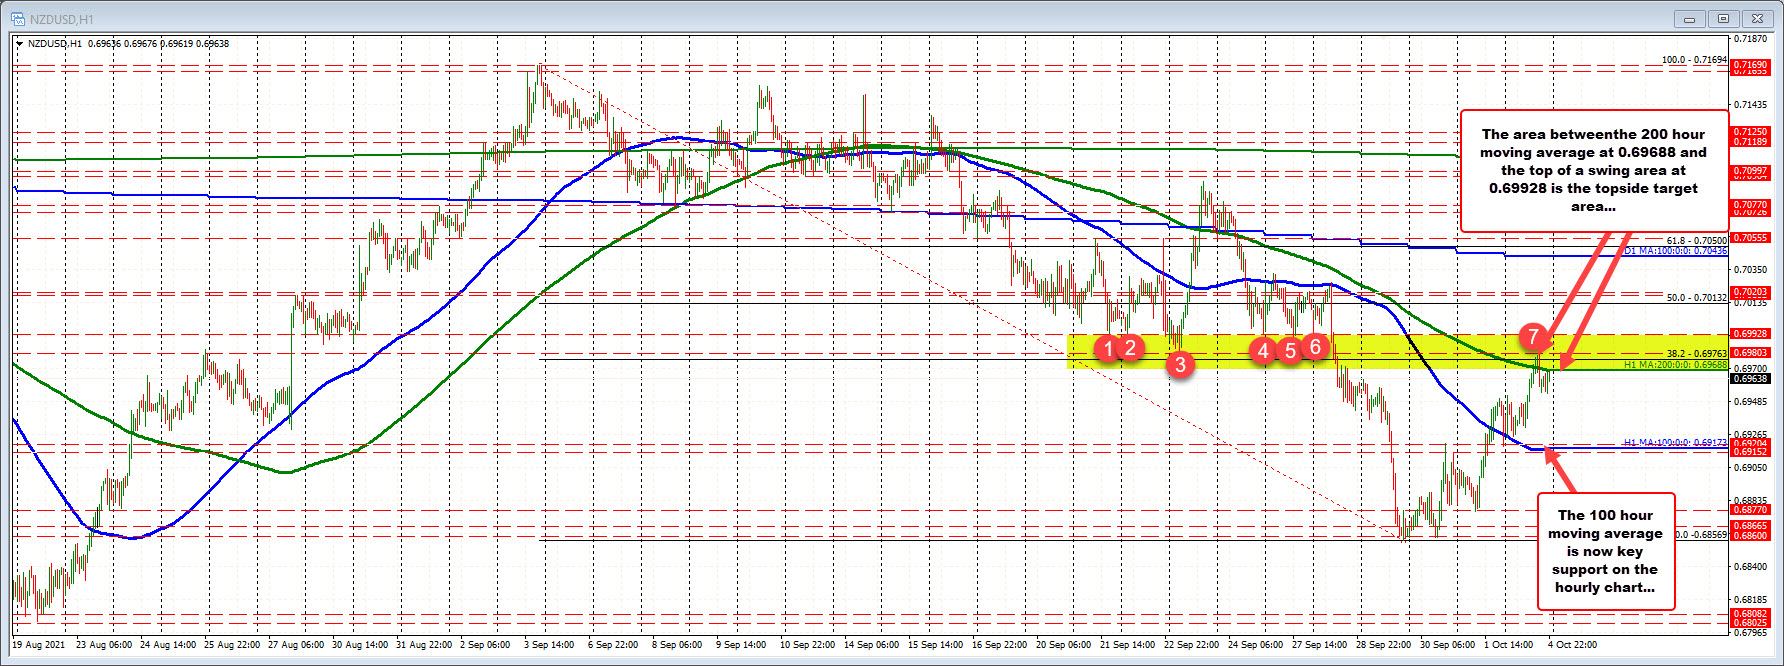 NZDUSD hangs around 200 hour MA a day (and a few hours) from RBNZ rate decision